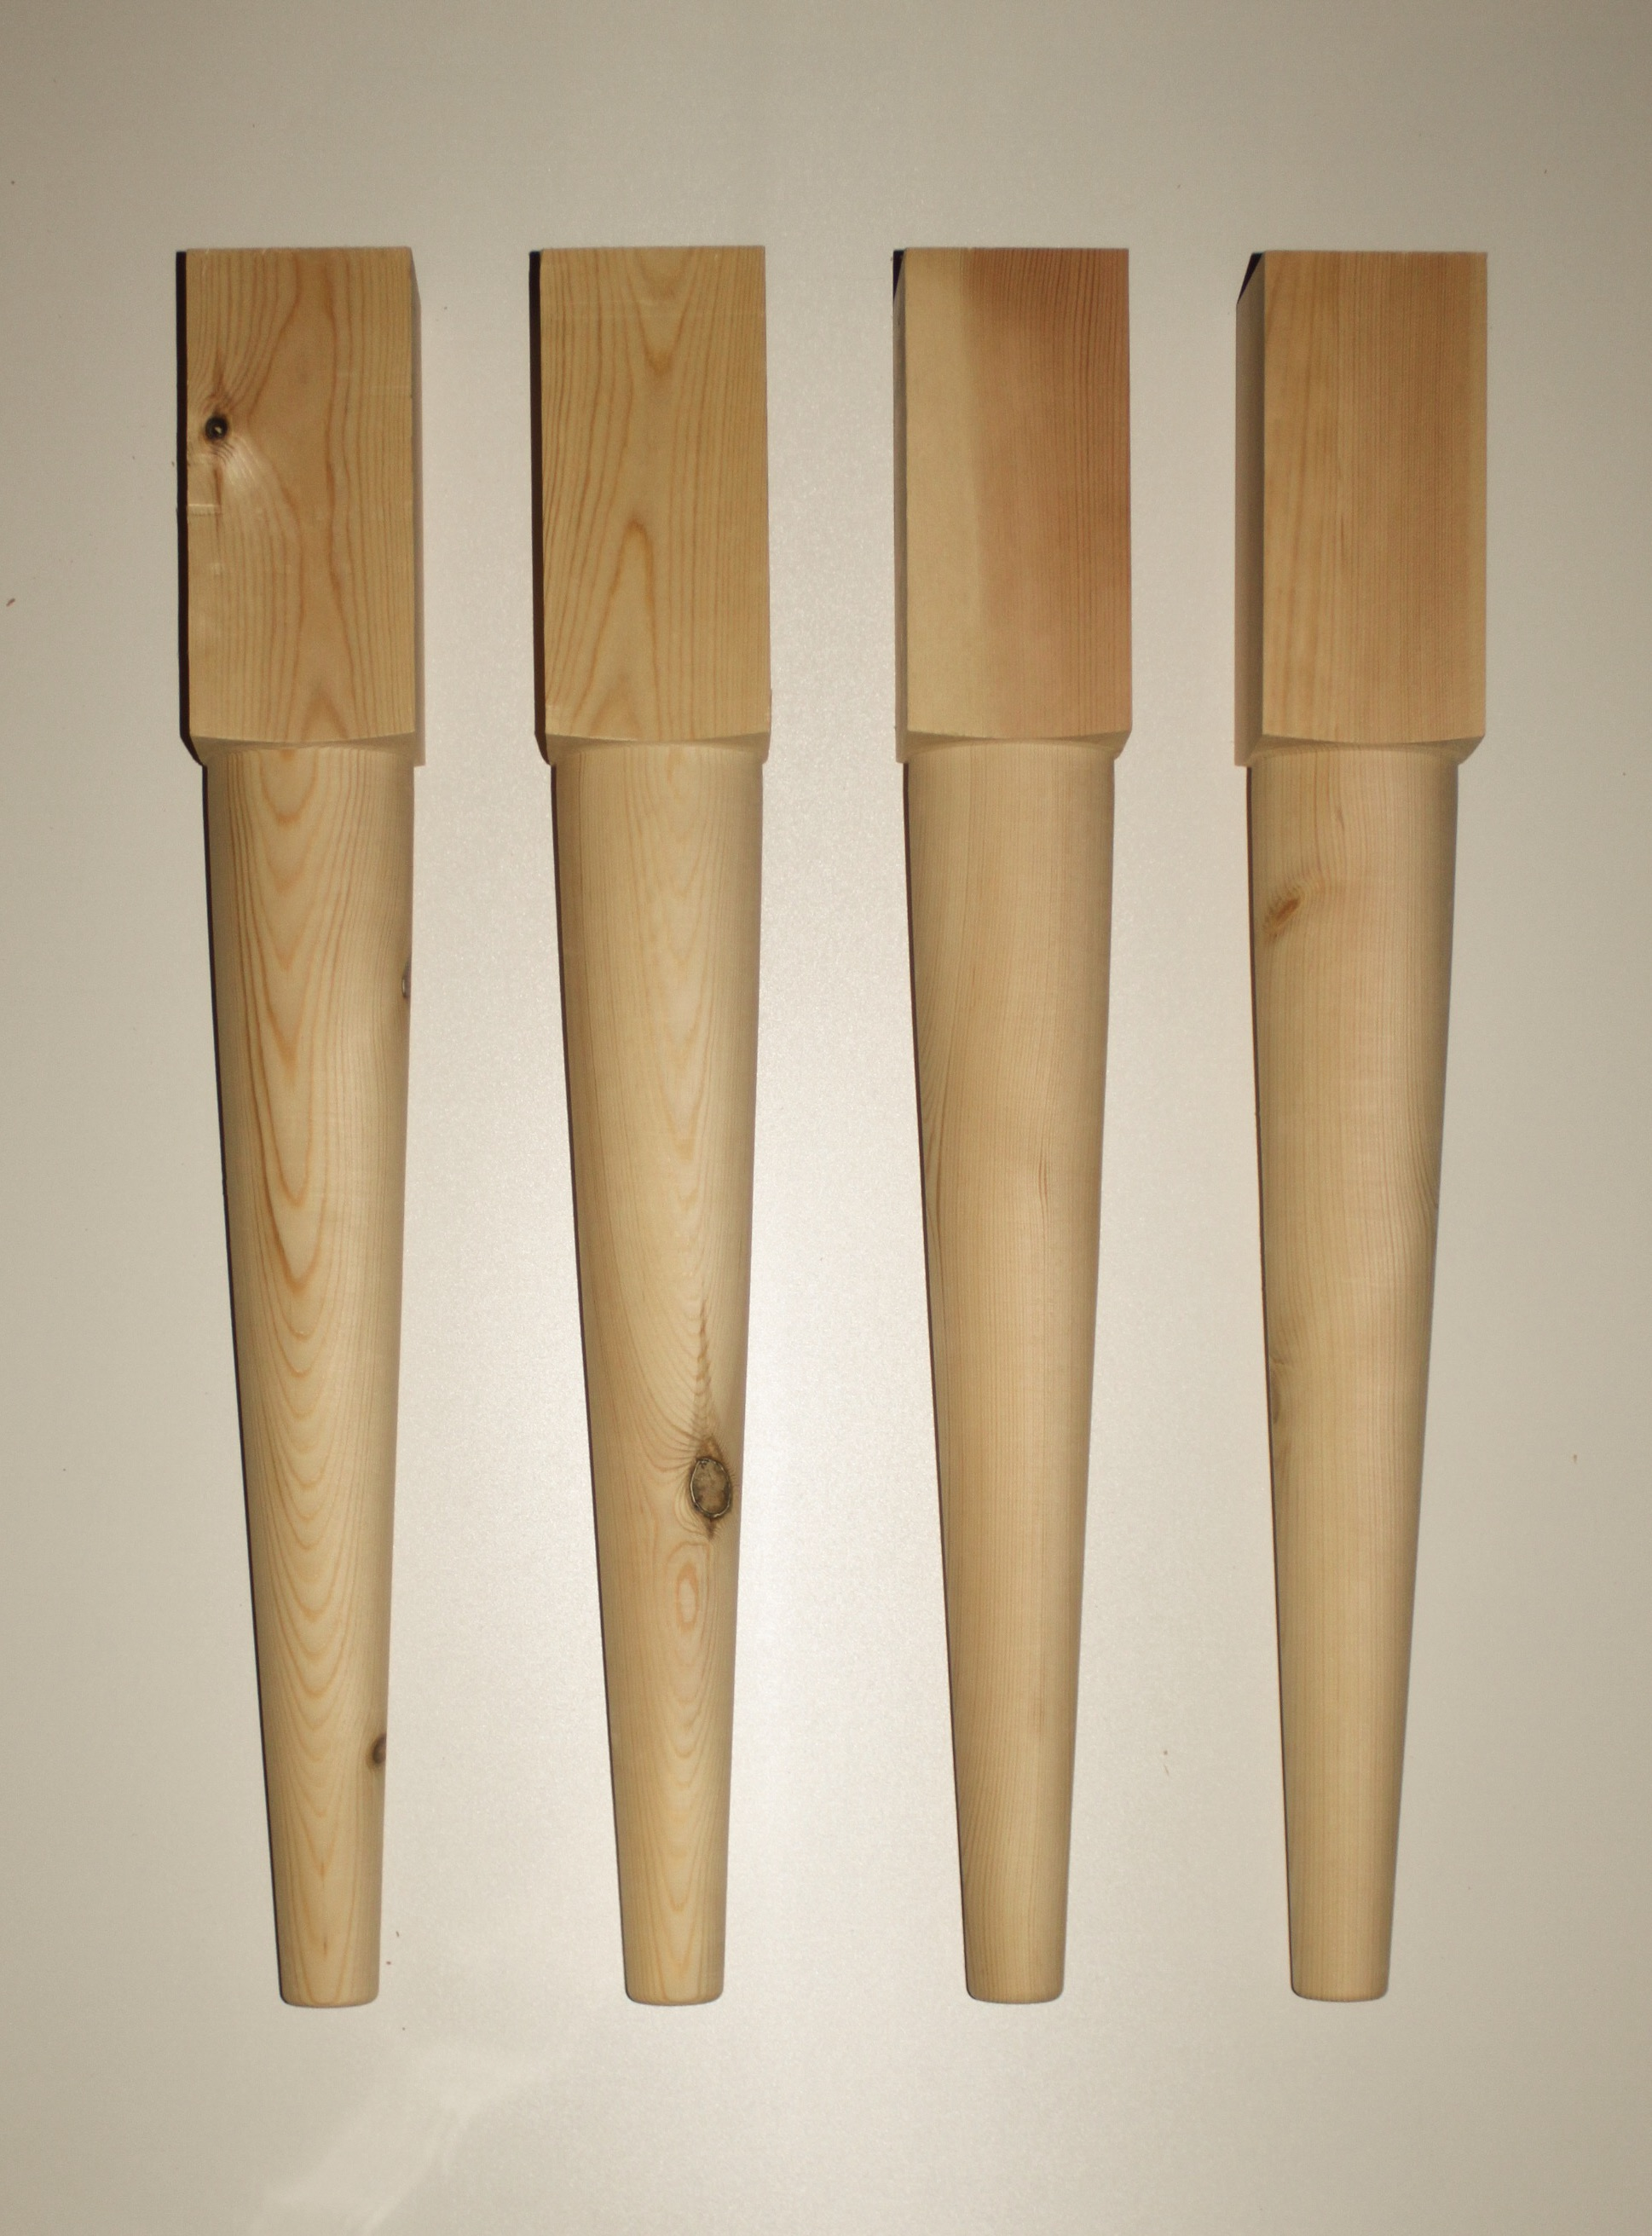 dave dalby woodturning table legs bun feet and other turnings direct from the manufacturer. Black Bedroom Furniture Sets. Home Design Ideas